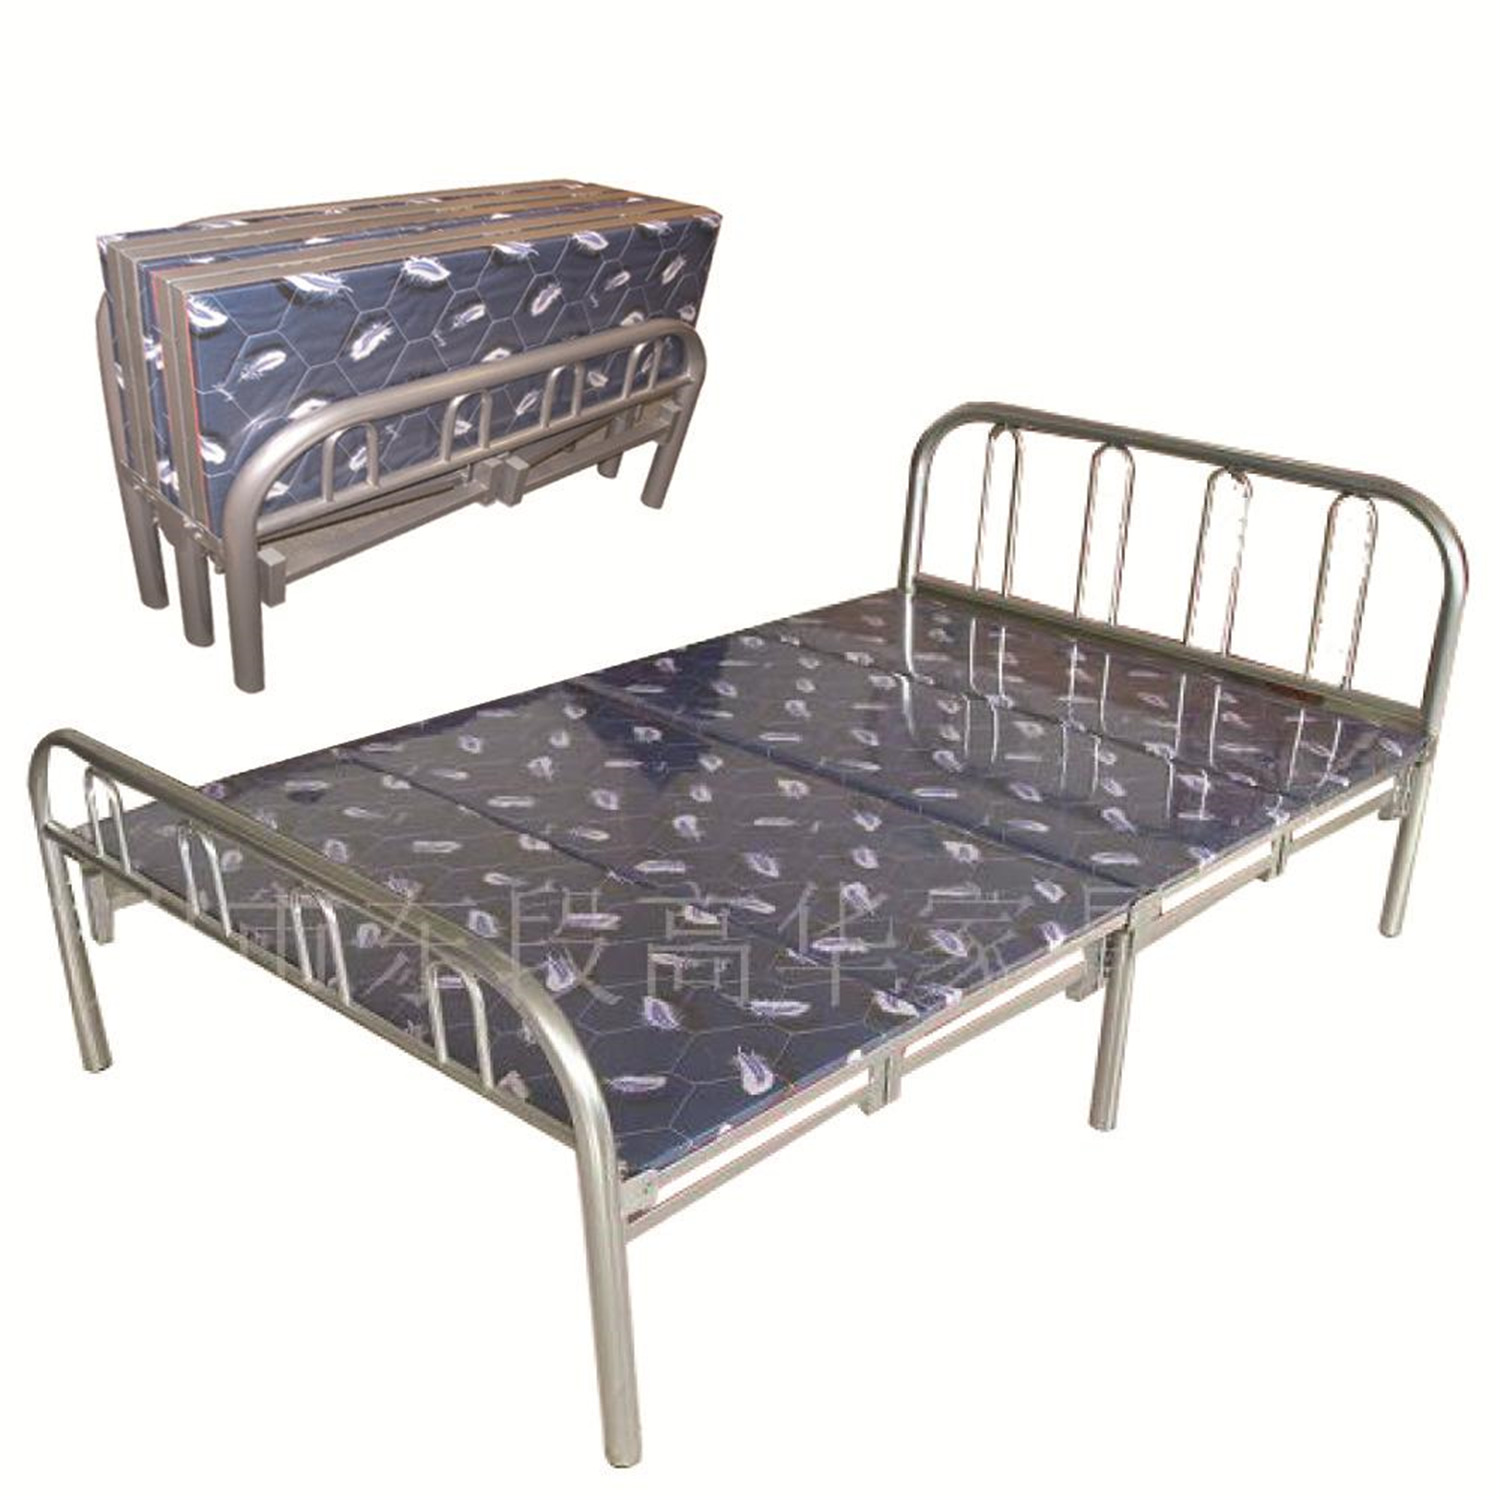 Home Source Metal Folding Bed By Oj Commerce Butterfly